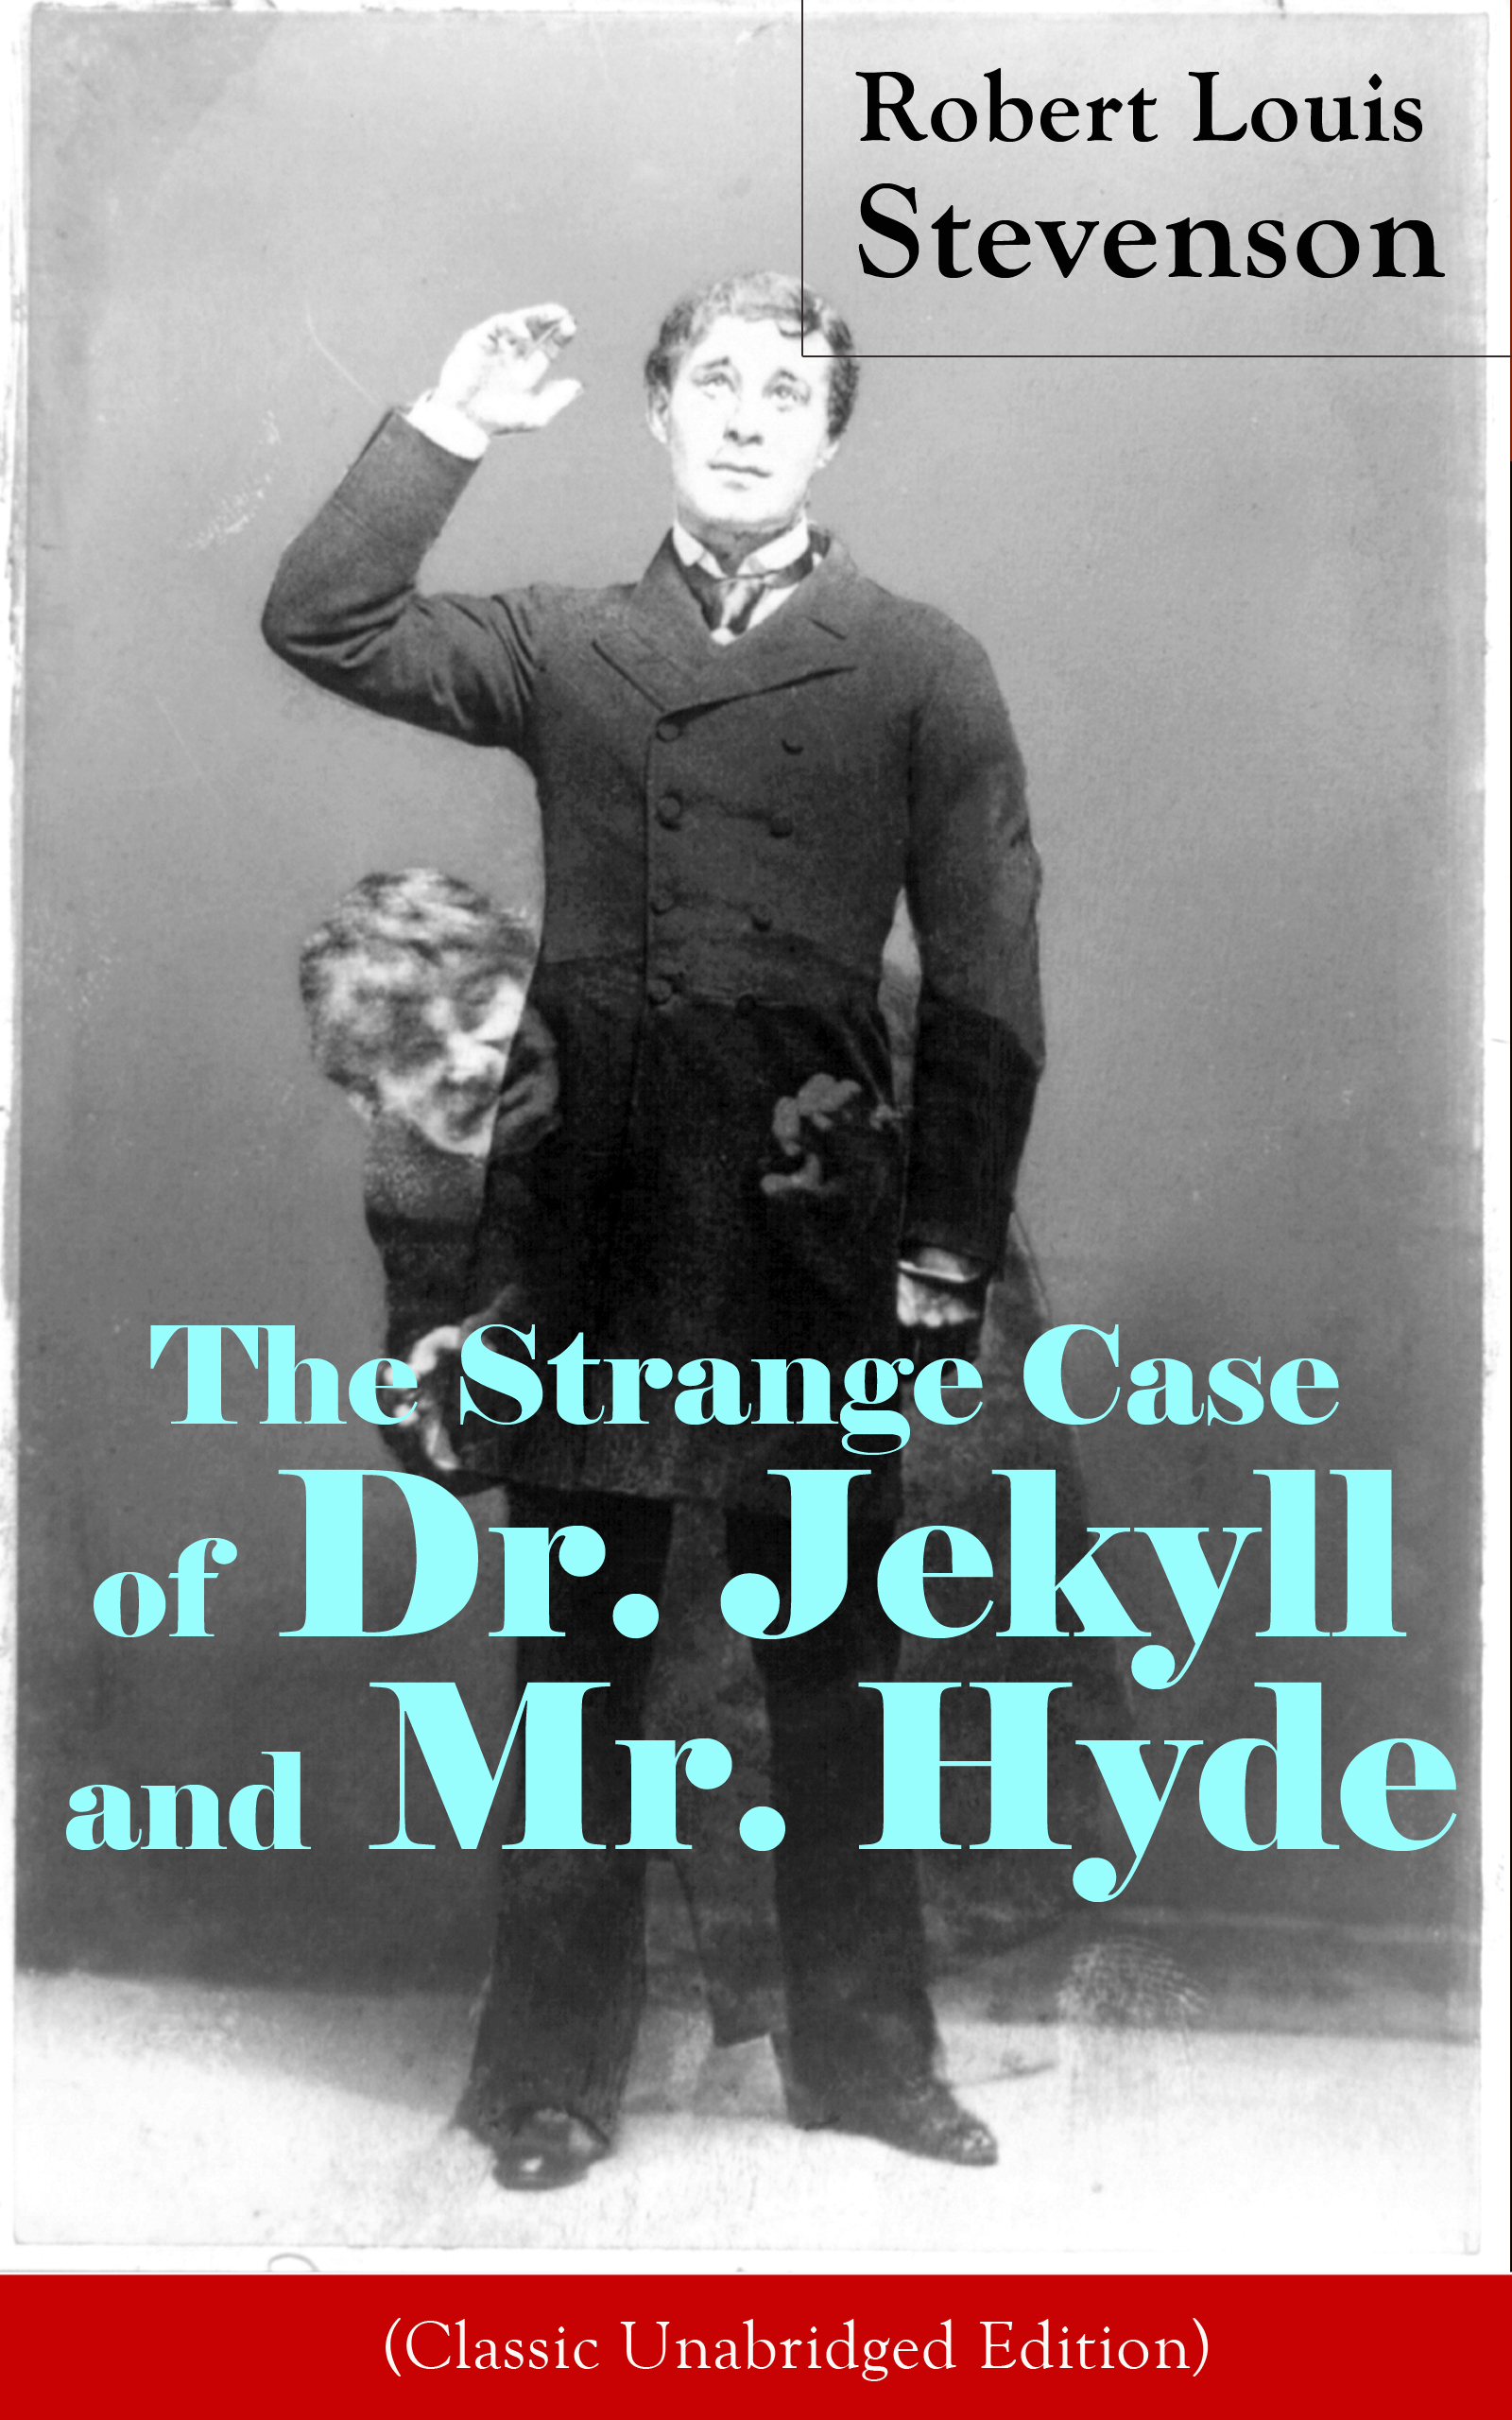 цена Robert Louis Stevenson The Strange Case of Dr. Jekyll and Mr. Hyde (Classic Unabridged Edition) онлайн в 2017 году